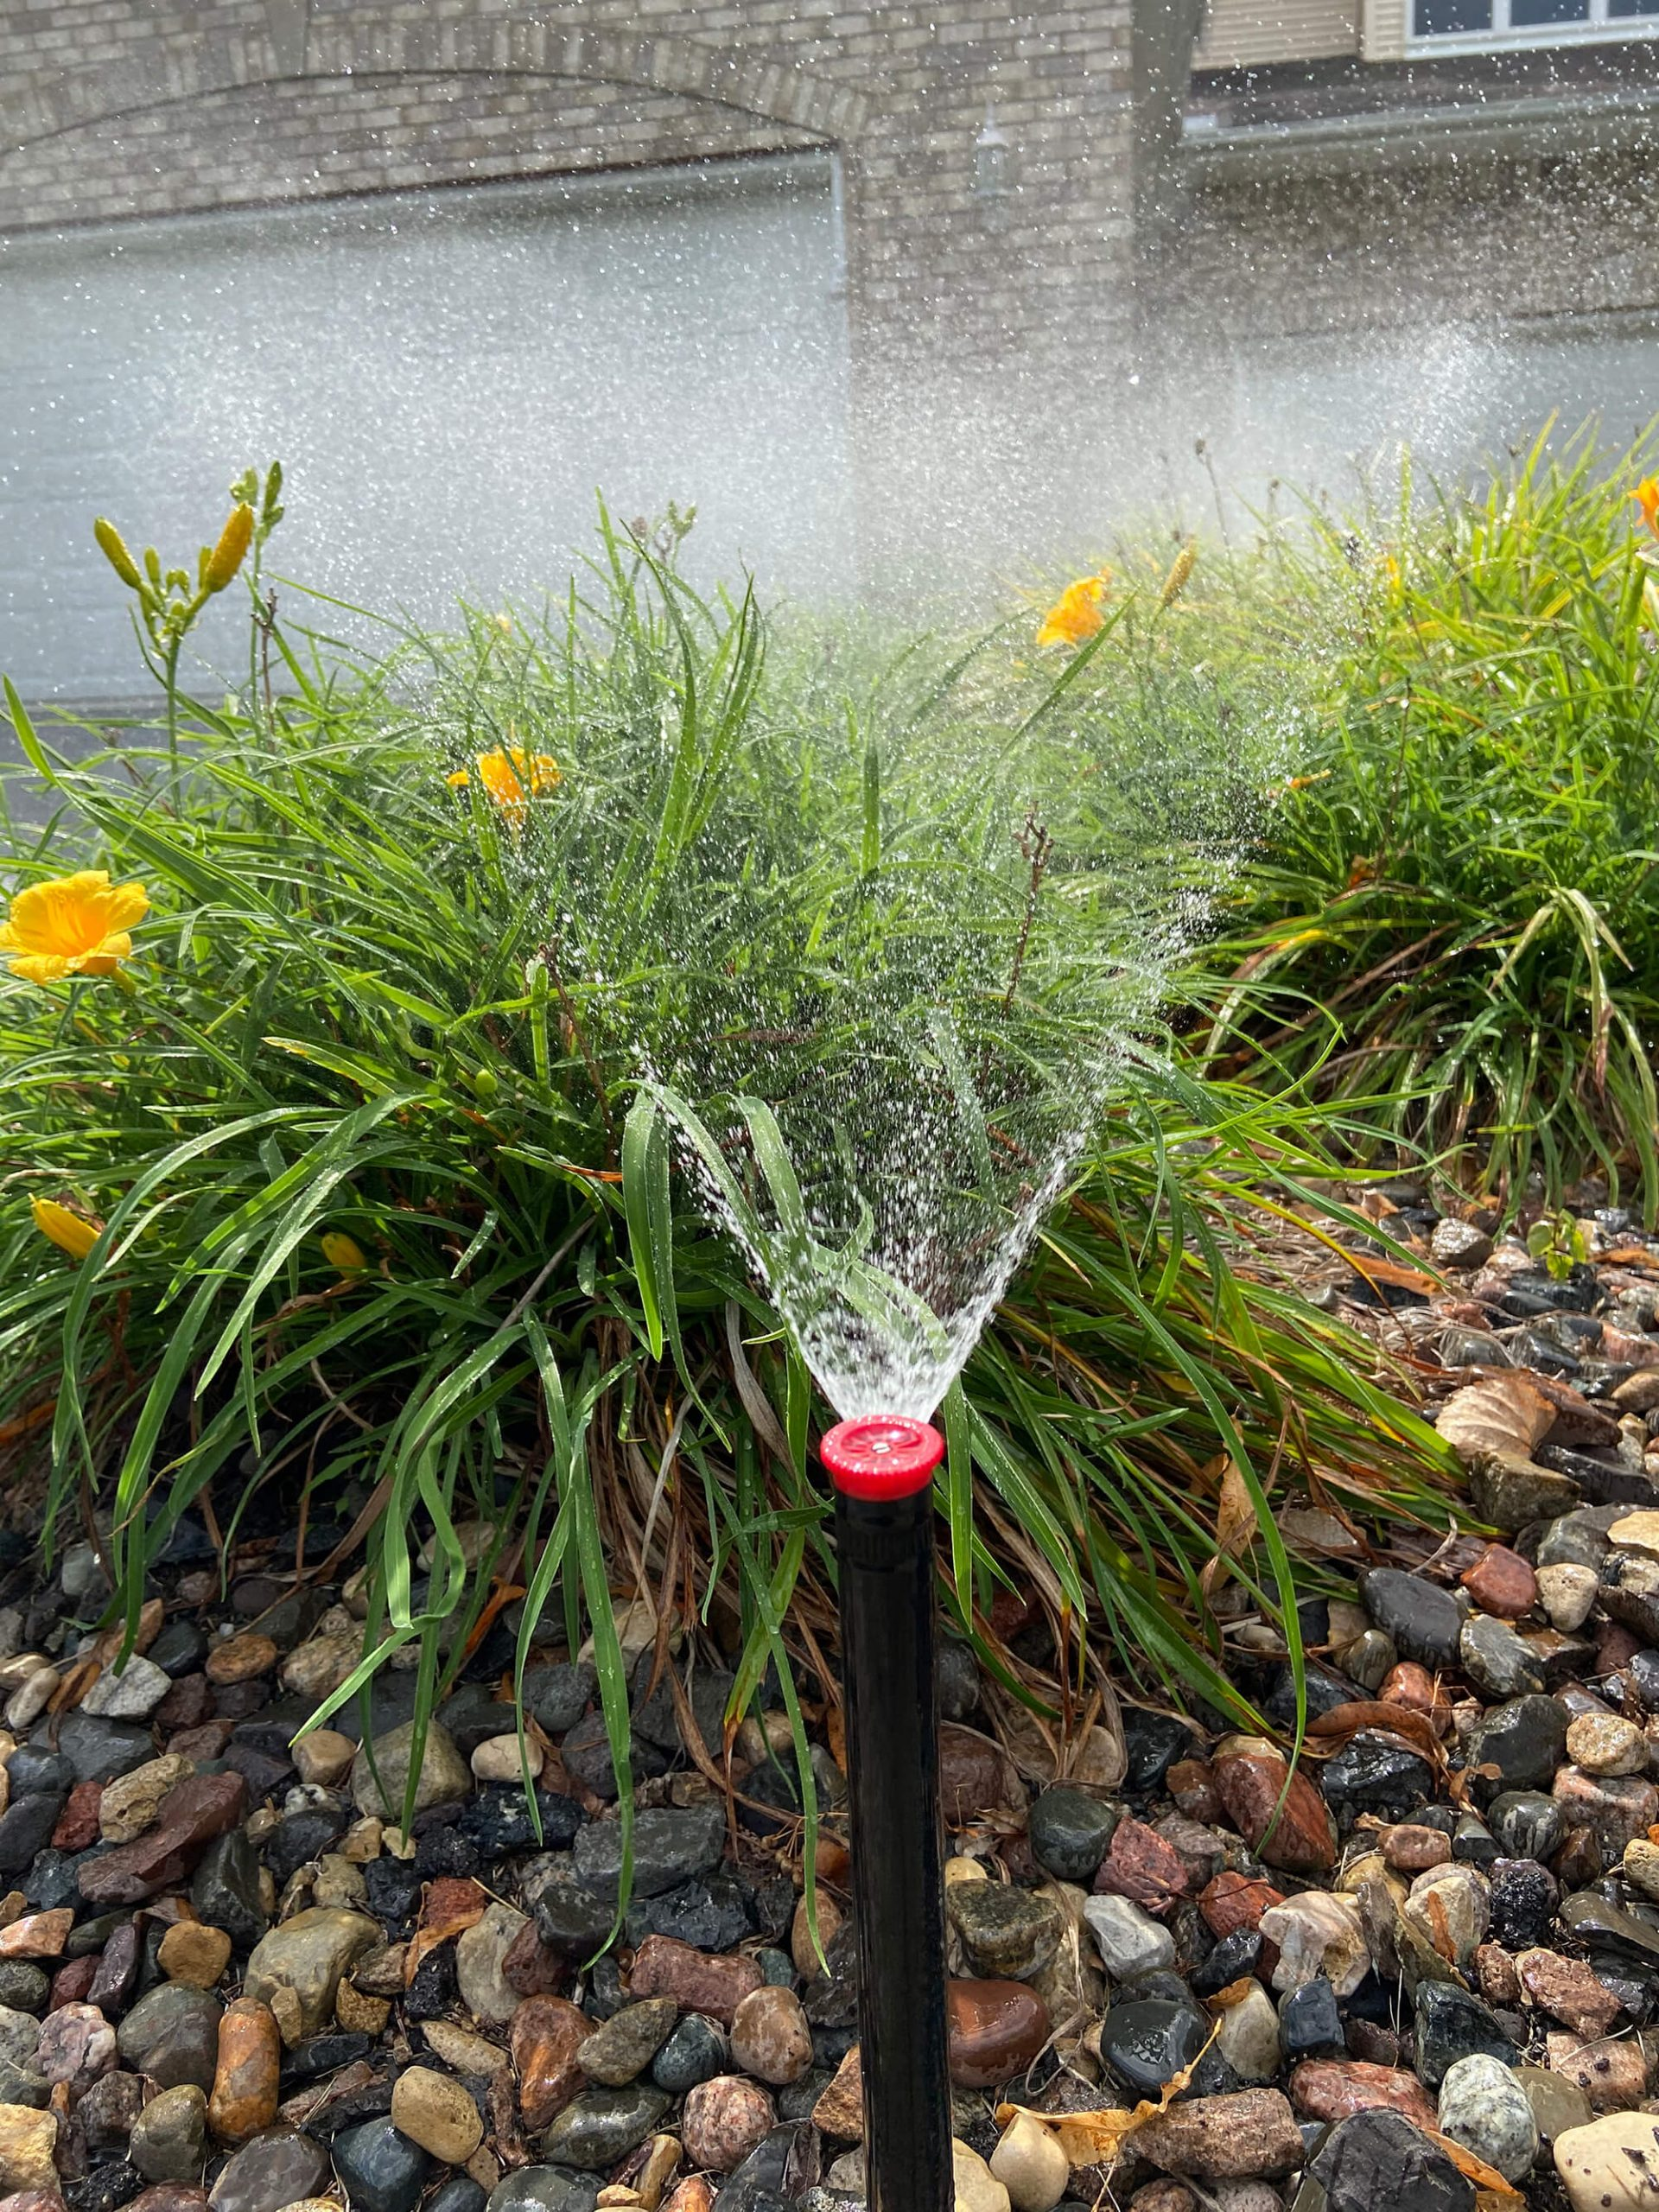 irrigation system watering flowers